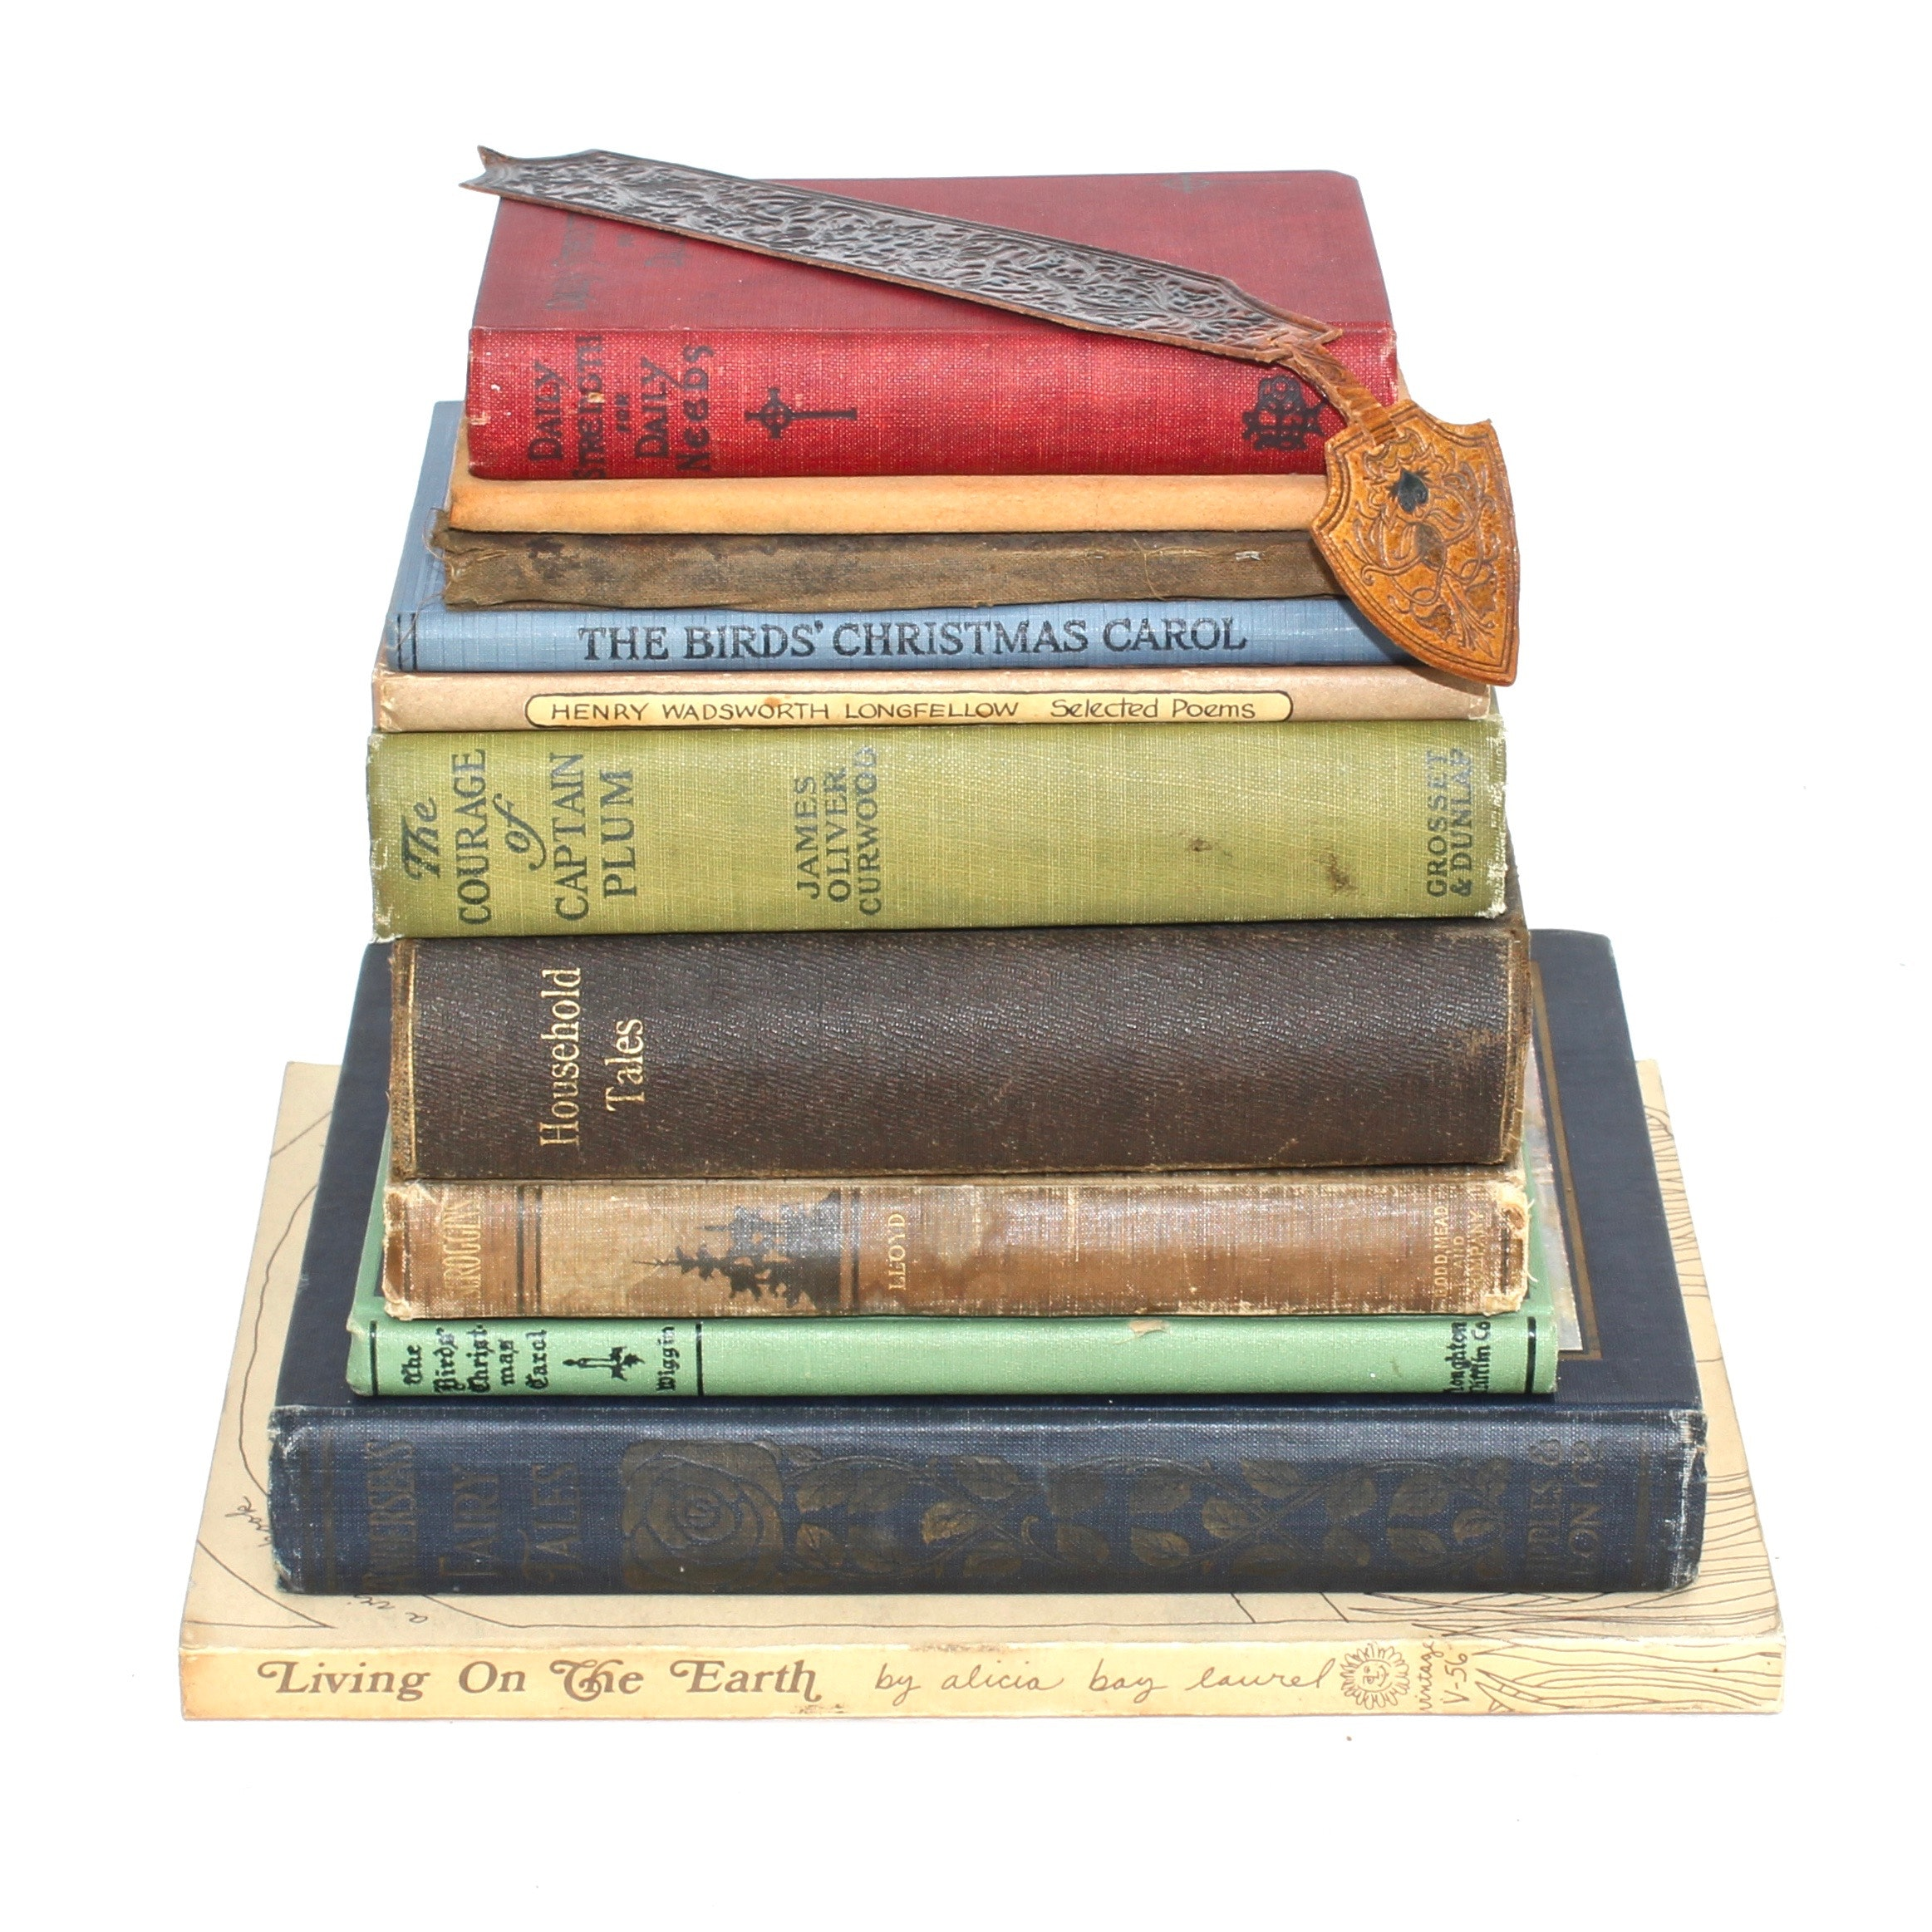 Collection of Vintage and Antique Books